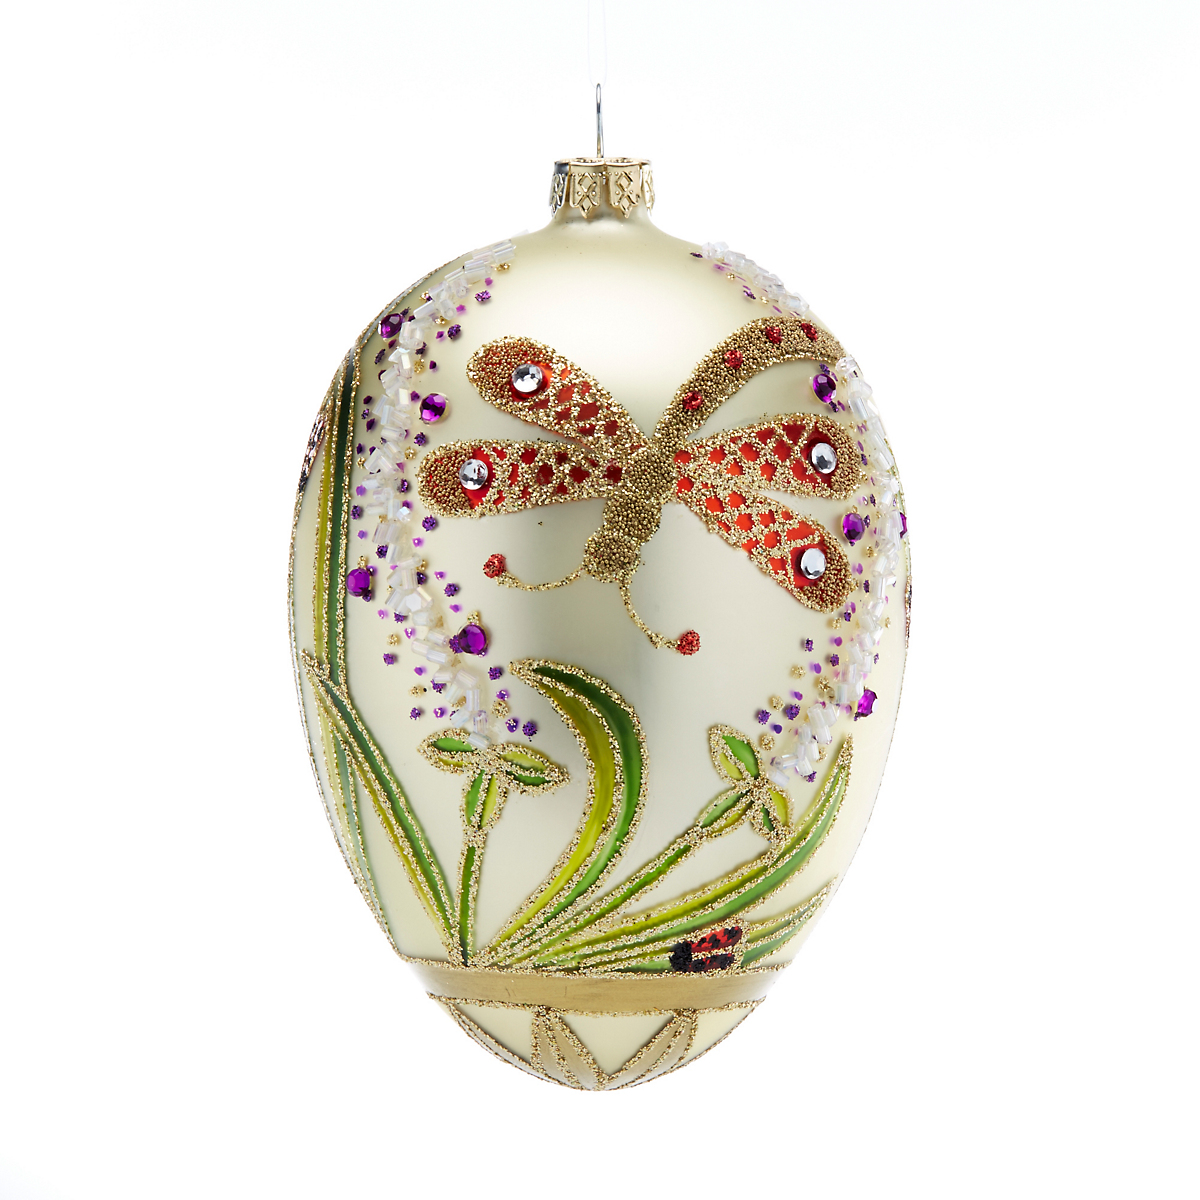 Garden Lover's Secret Garden Egg Christmas Ornament